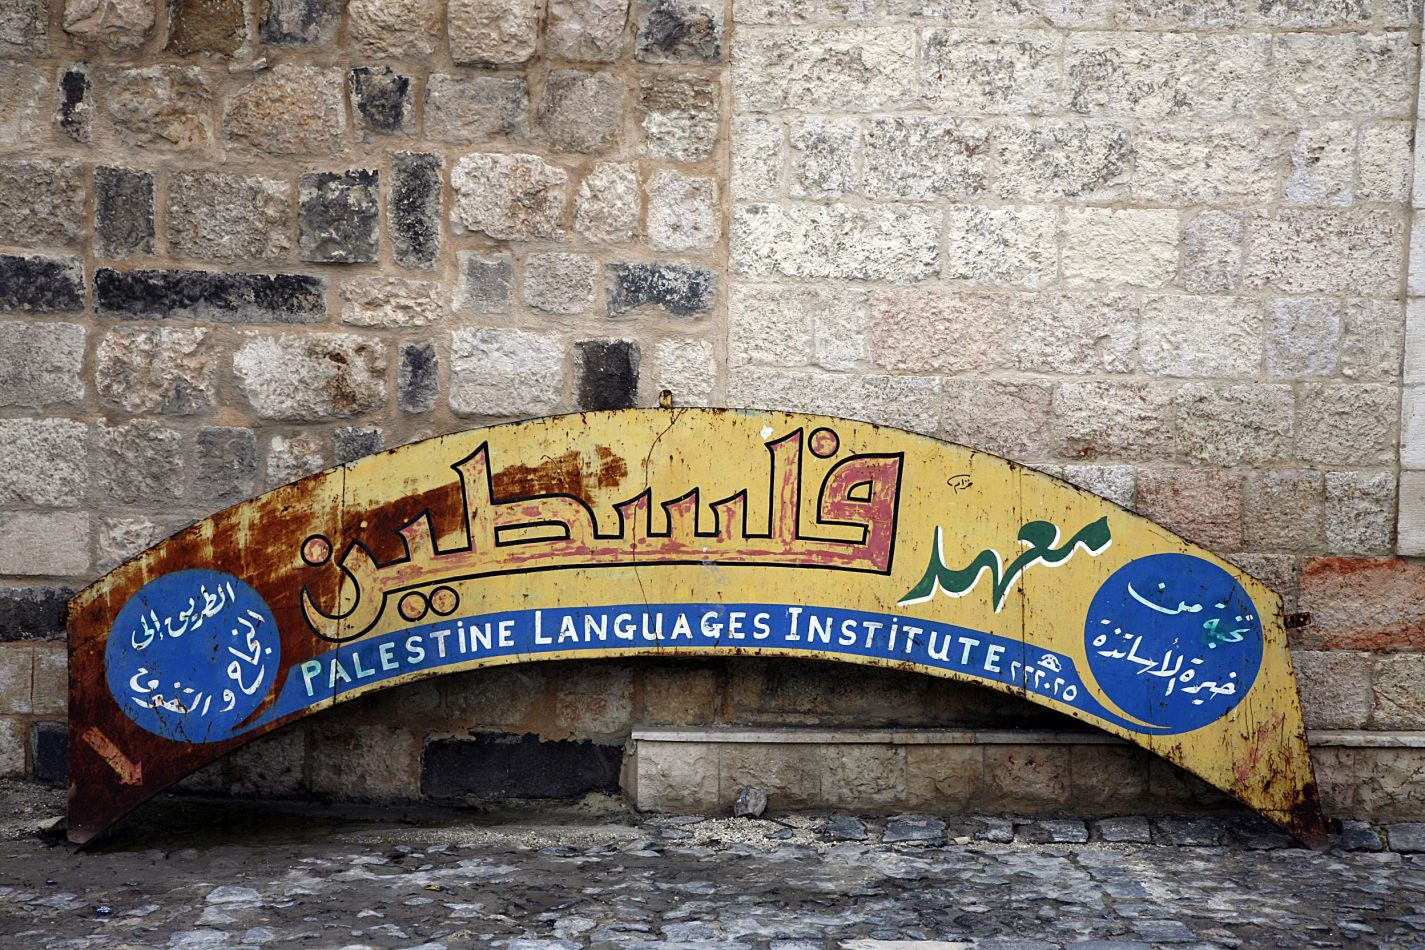 Anthony Ellis Photography: Shadows and Steps - معهد فلسطين (Palestine Languages Institute)